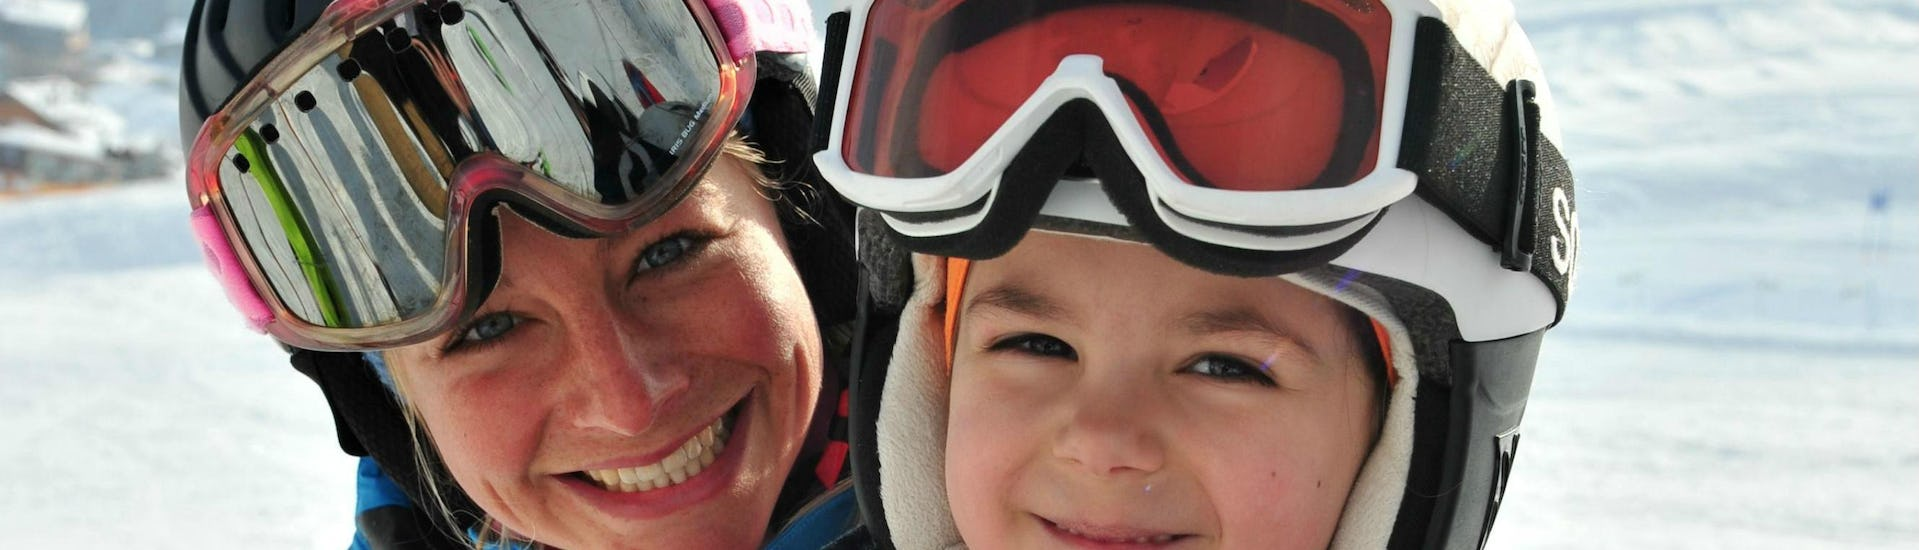 Ski Instructor Private for Kids in Lech - All Ages